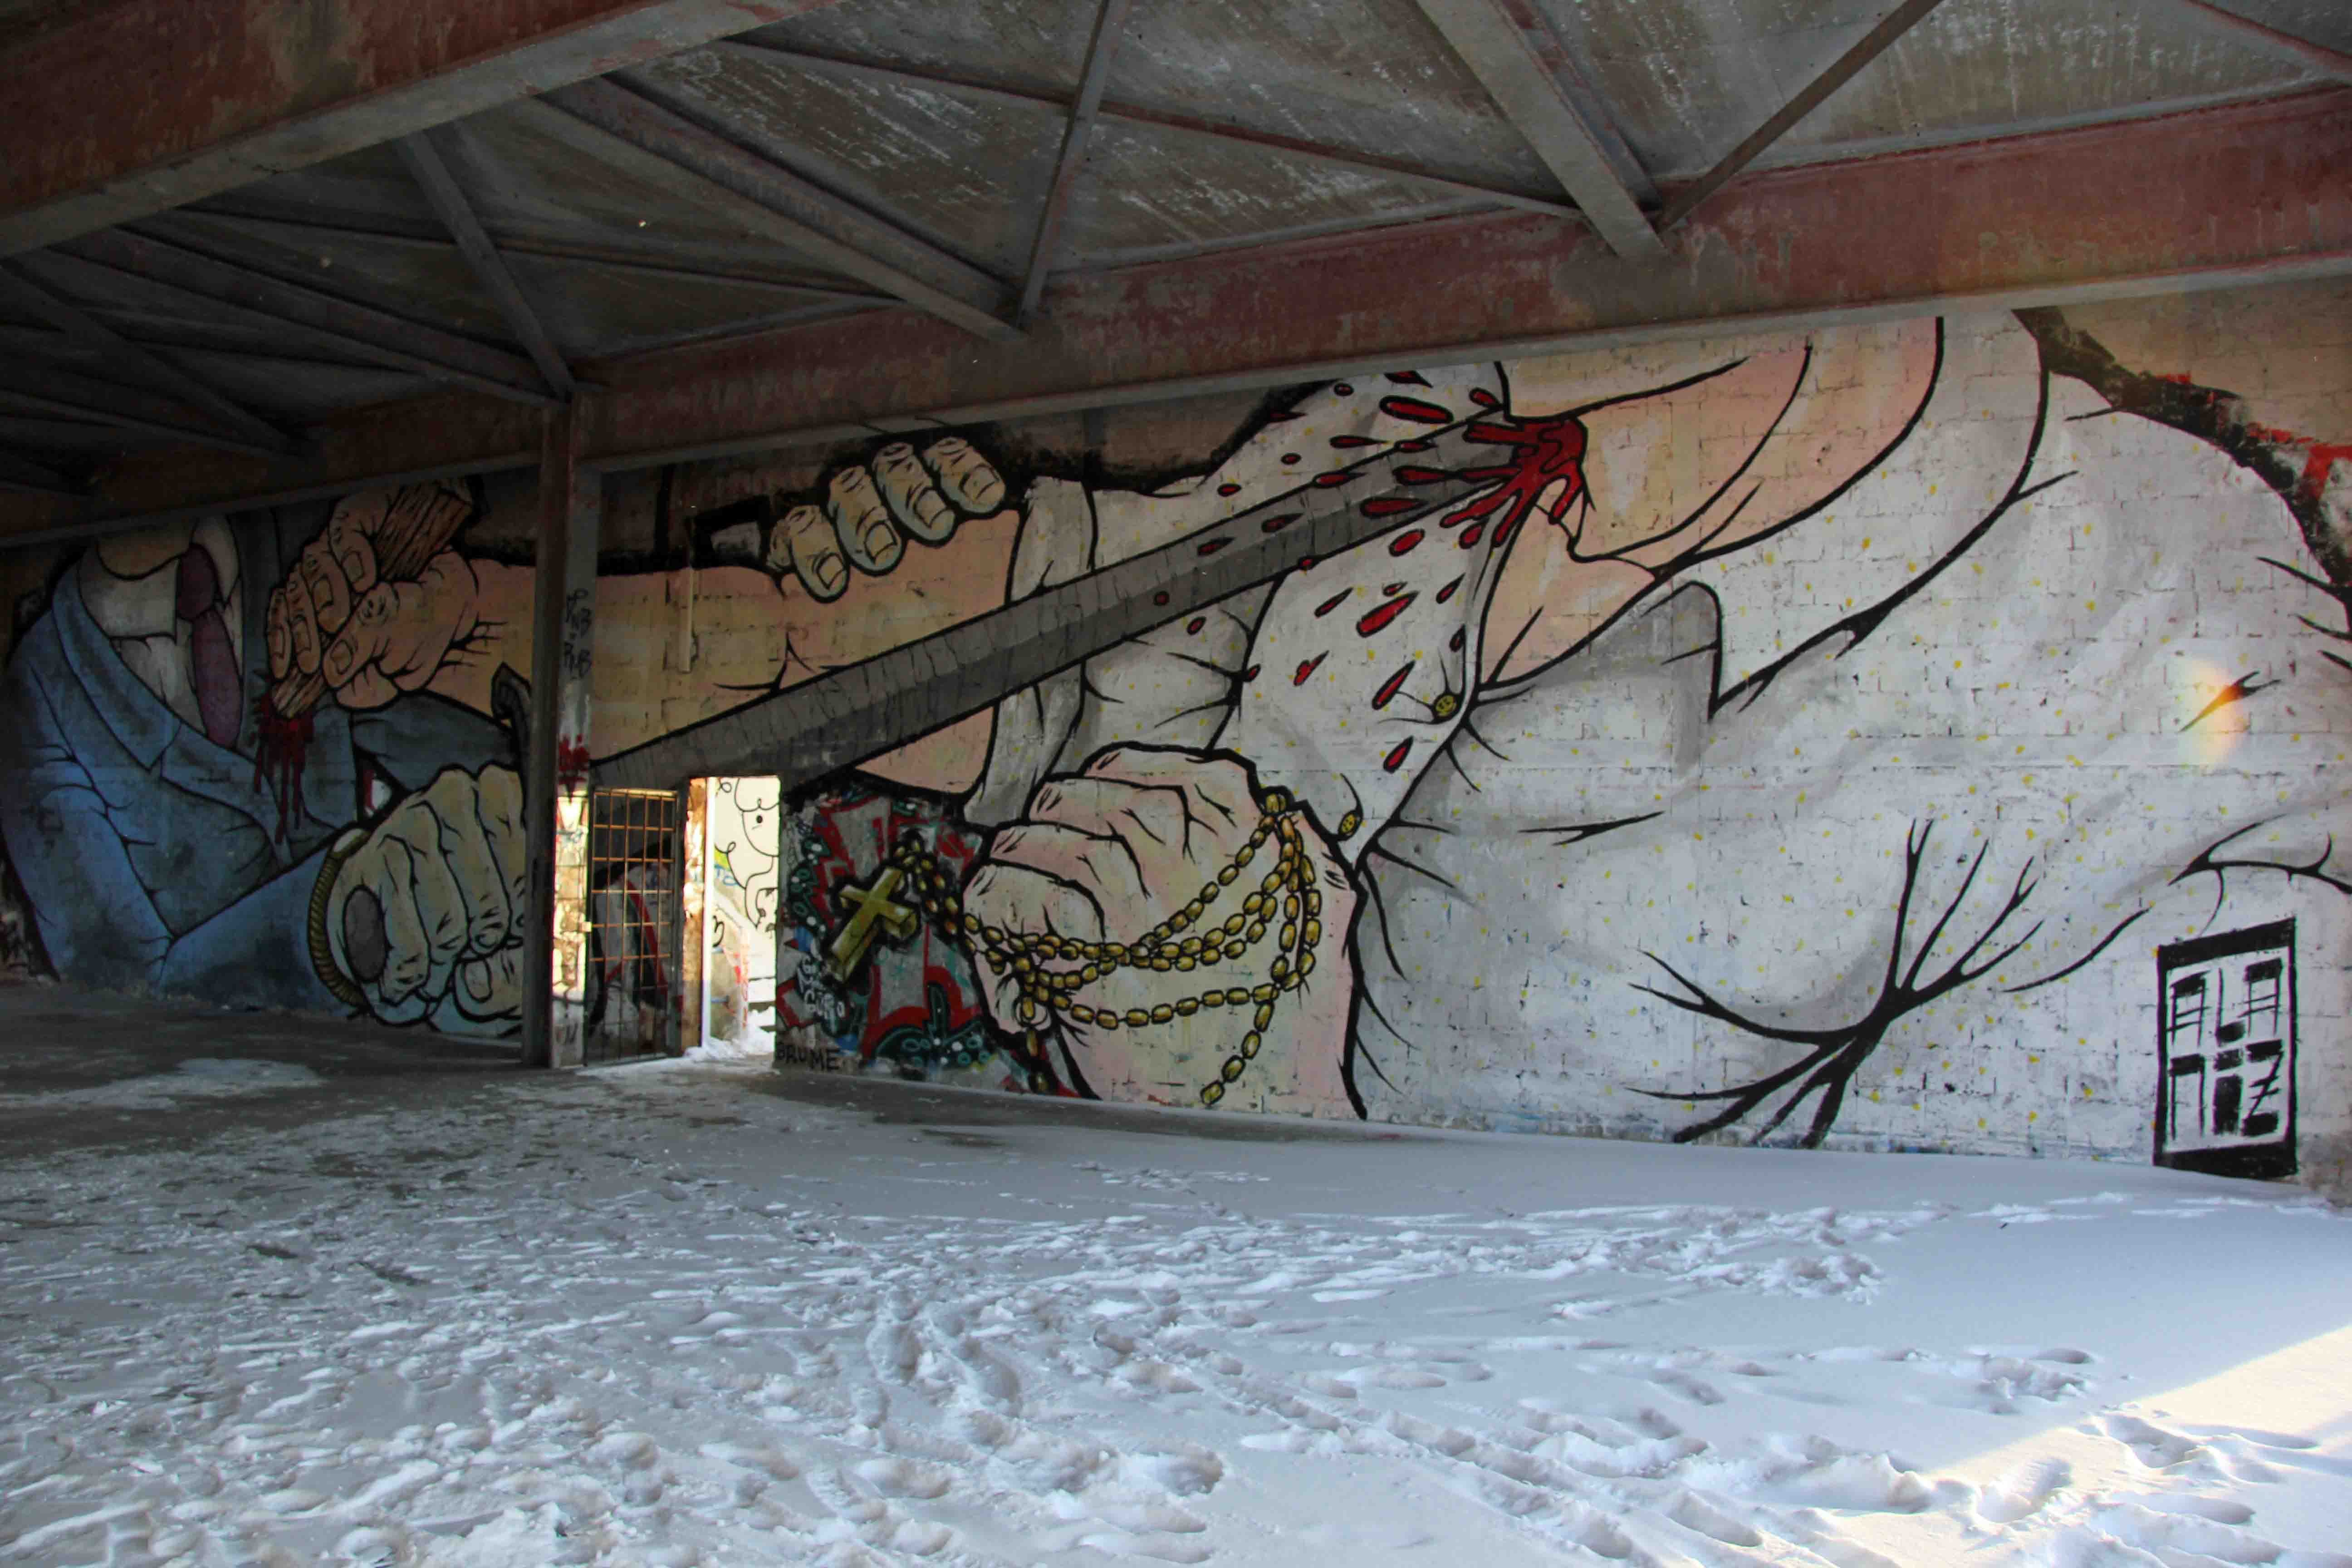 Fight To The Death - Street Art by ALANIZ (painted for Artbase 2012) at the former NSA Listening Station at Teufelsberg Berlin